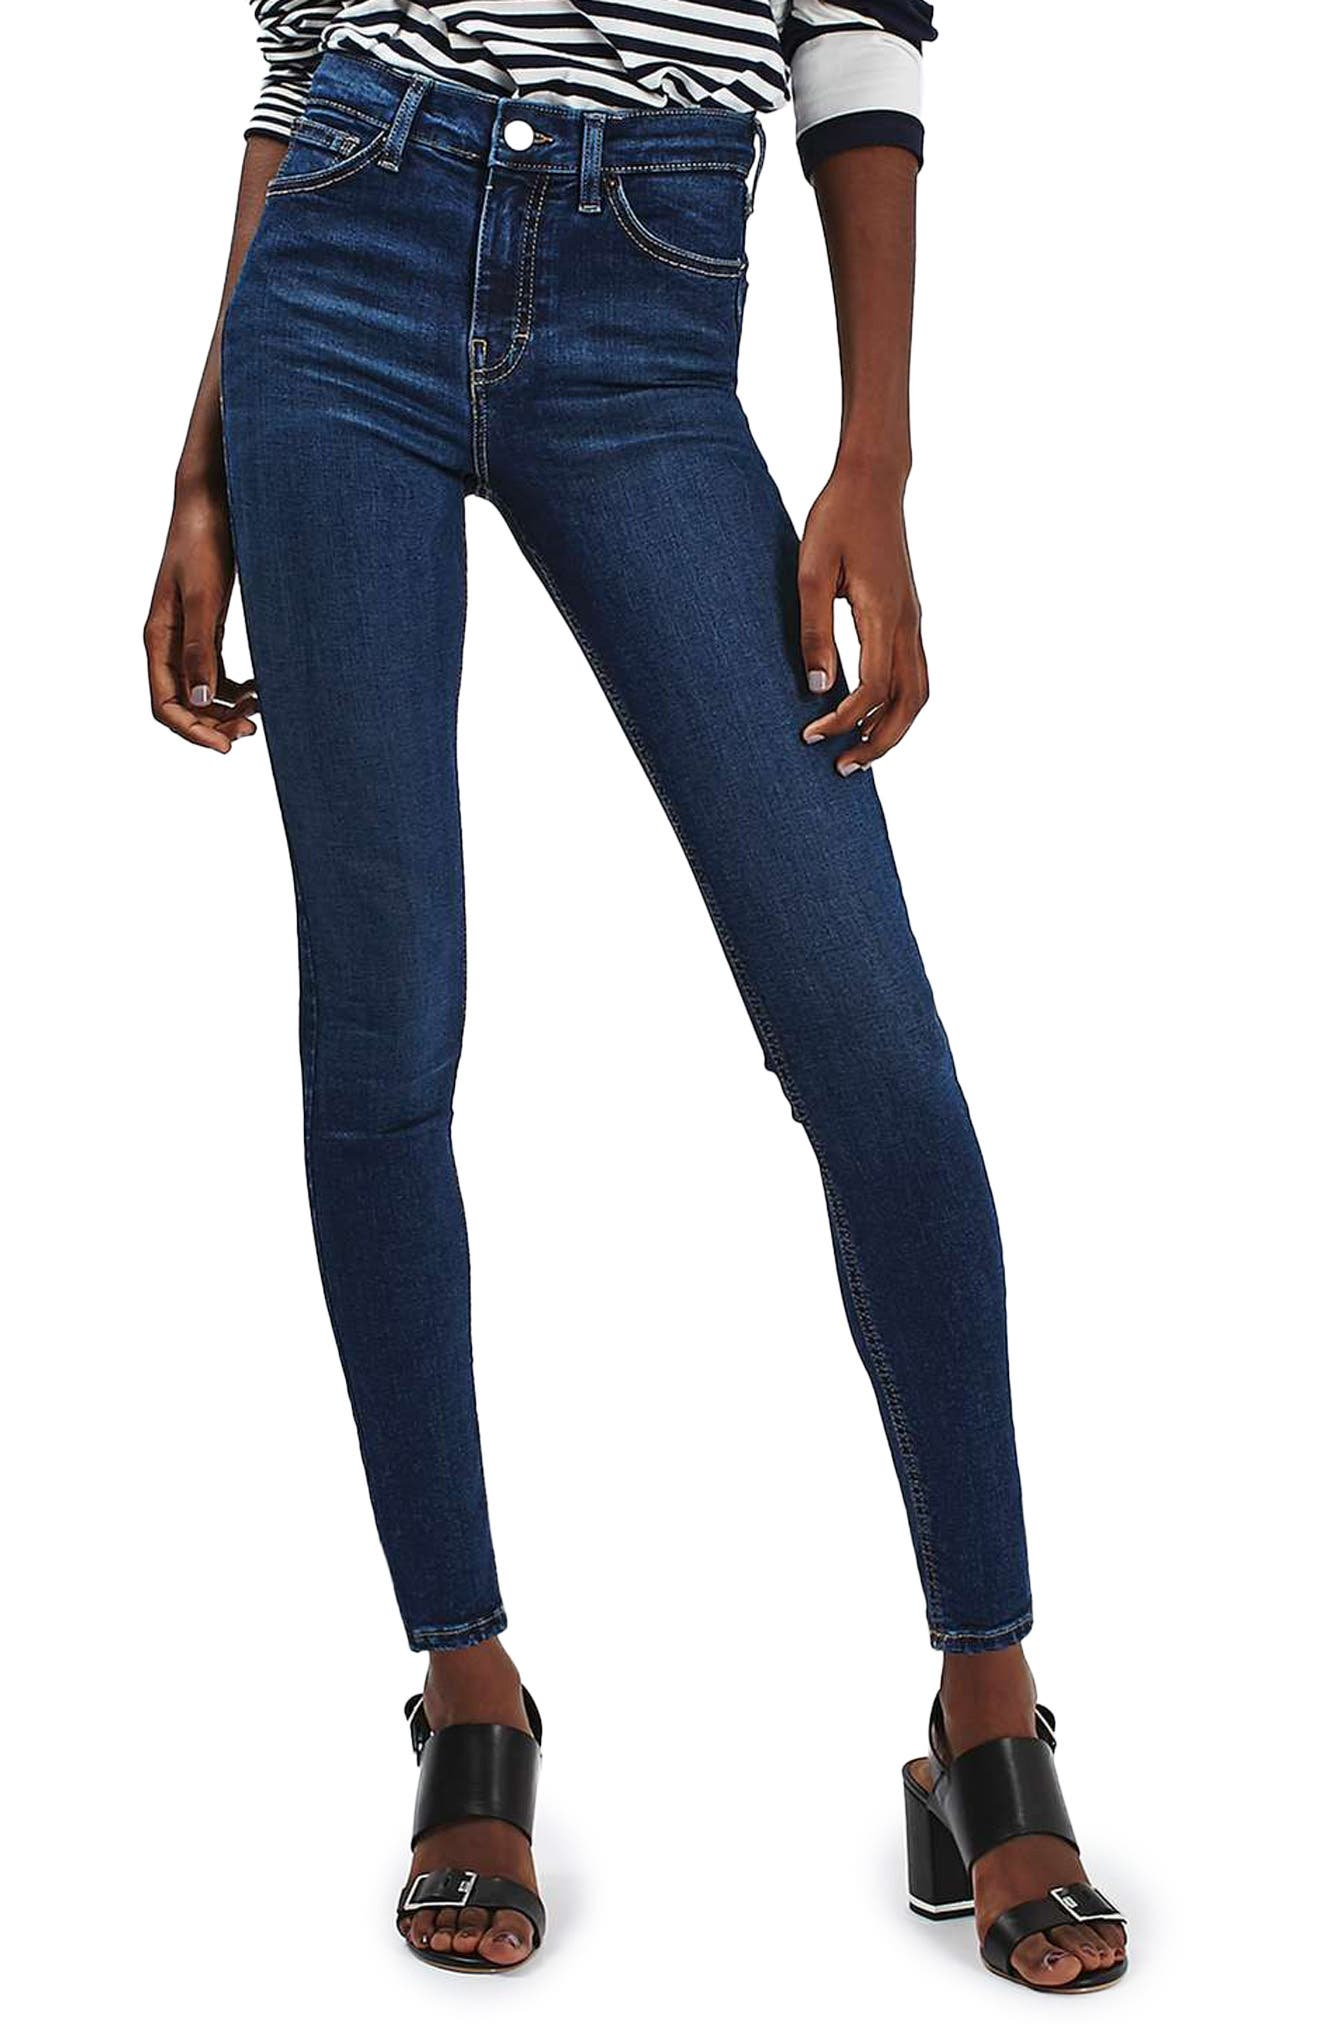 Jamie High Waist Ankle Skinny Jeans,                         Main,                         color, Indigo